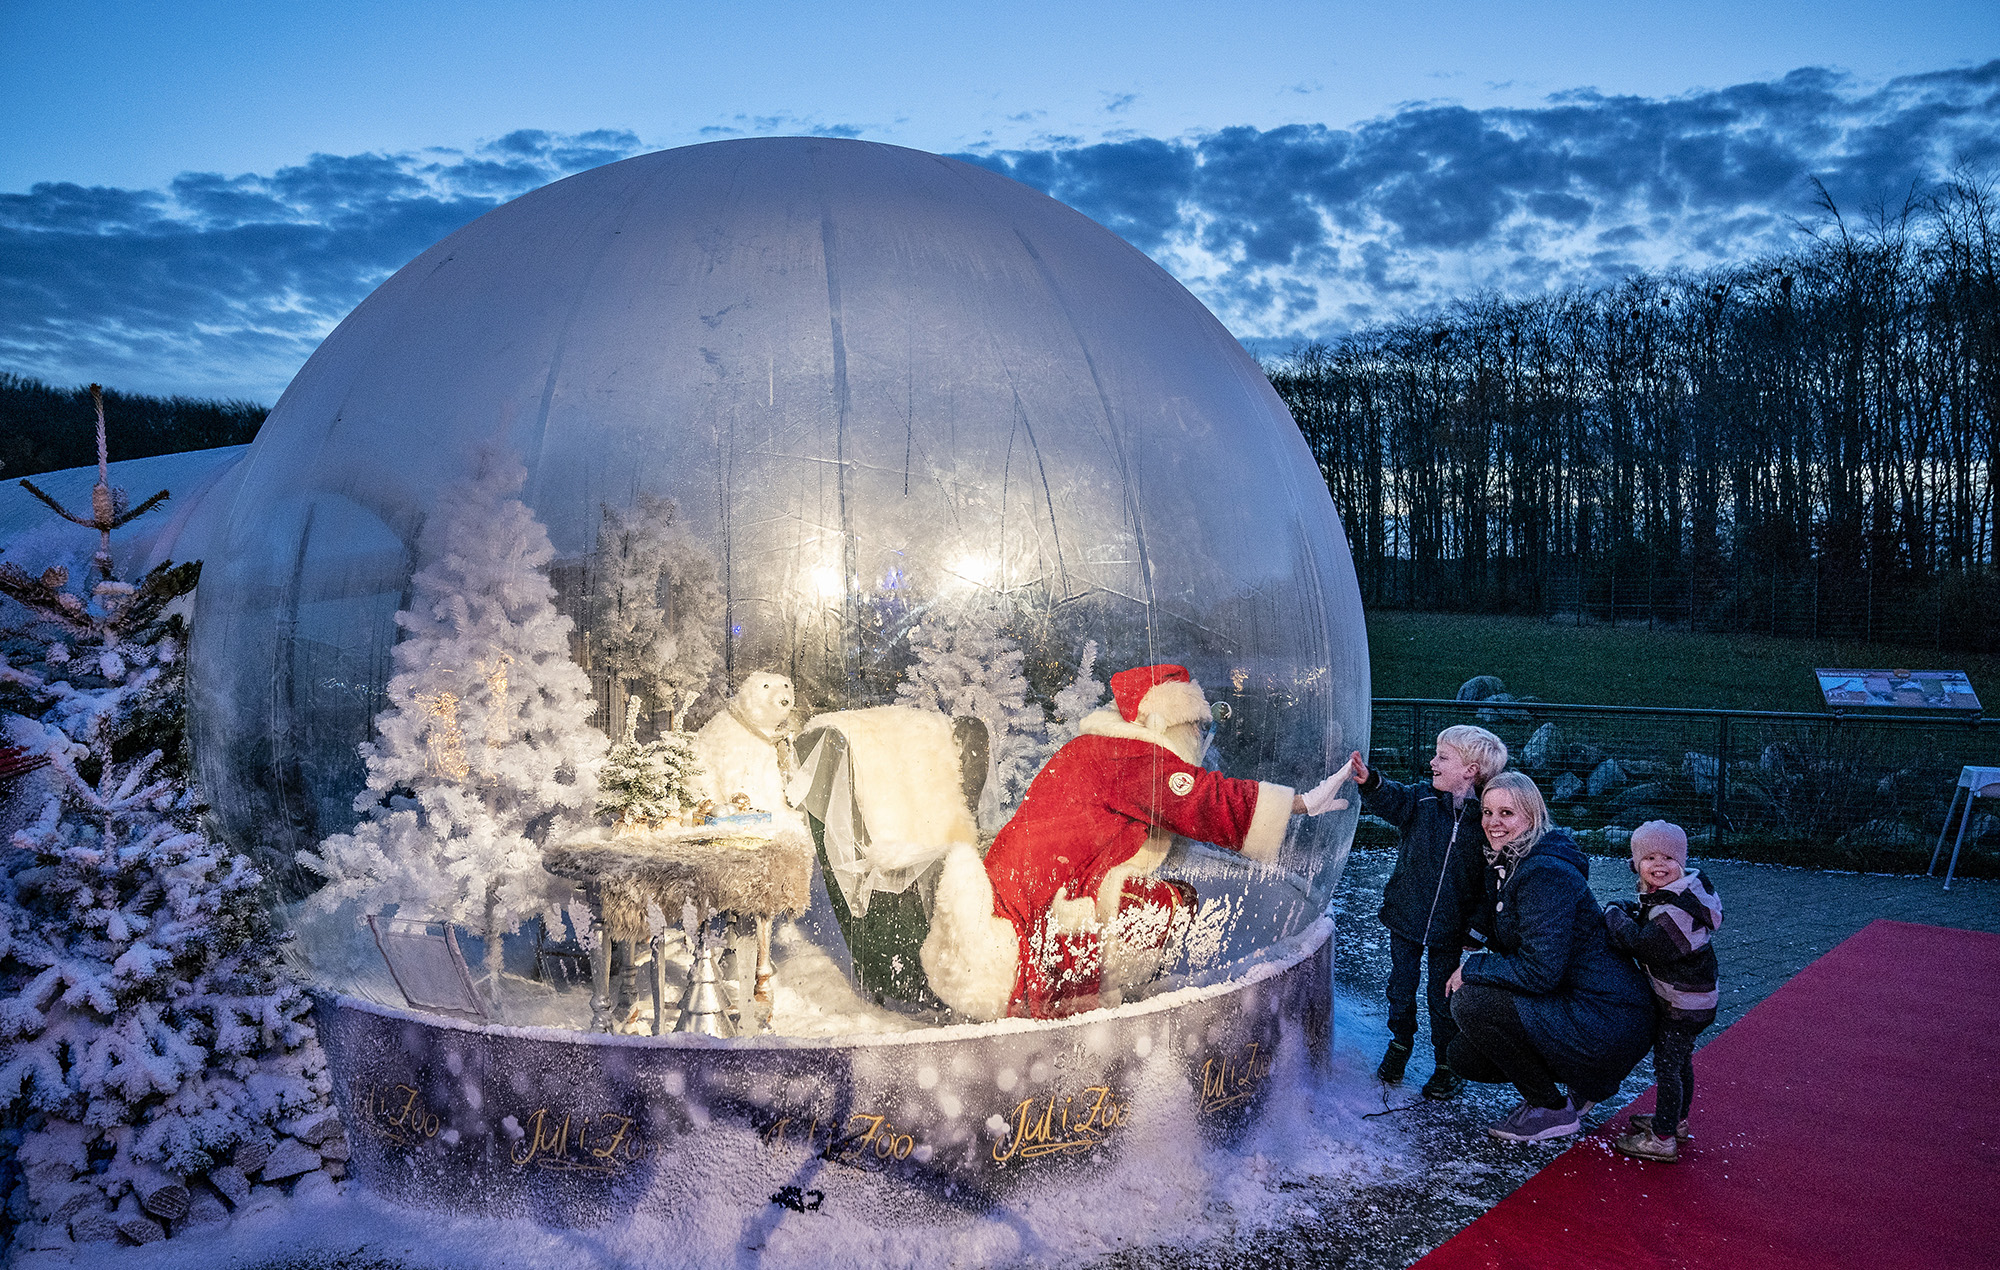 Santa Claus in a life size snow ball made of plastic as a safety measure against coronavirus in Aalborg zoo, 13 November 2020. Christmas decorations and lightings have adorned Aalborg zoo, but in order to follow coronavirus restrictive and safety measures Santa Claus was put in a life size snow ball made of plastic to greet the kids without worrying about infections. . EPA-EFE/Henning Bagger